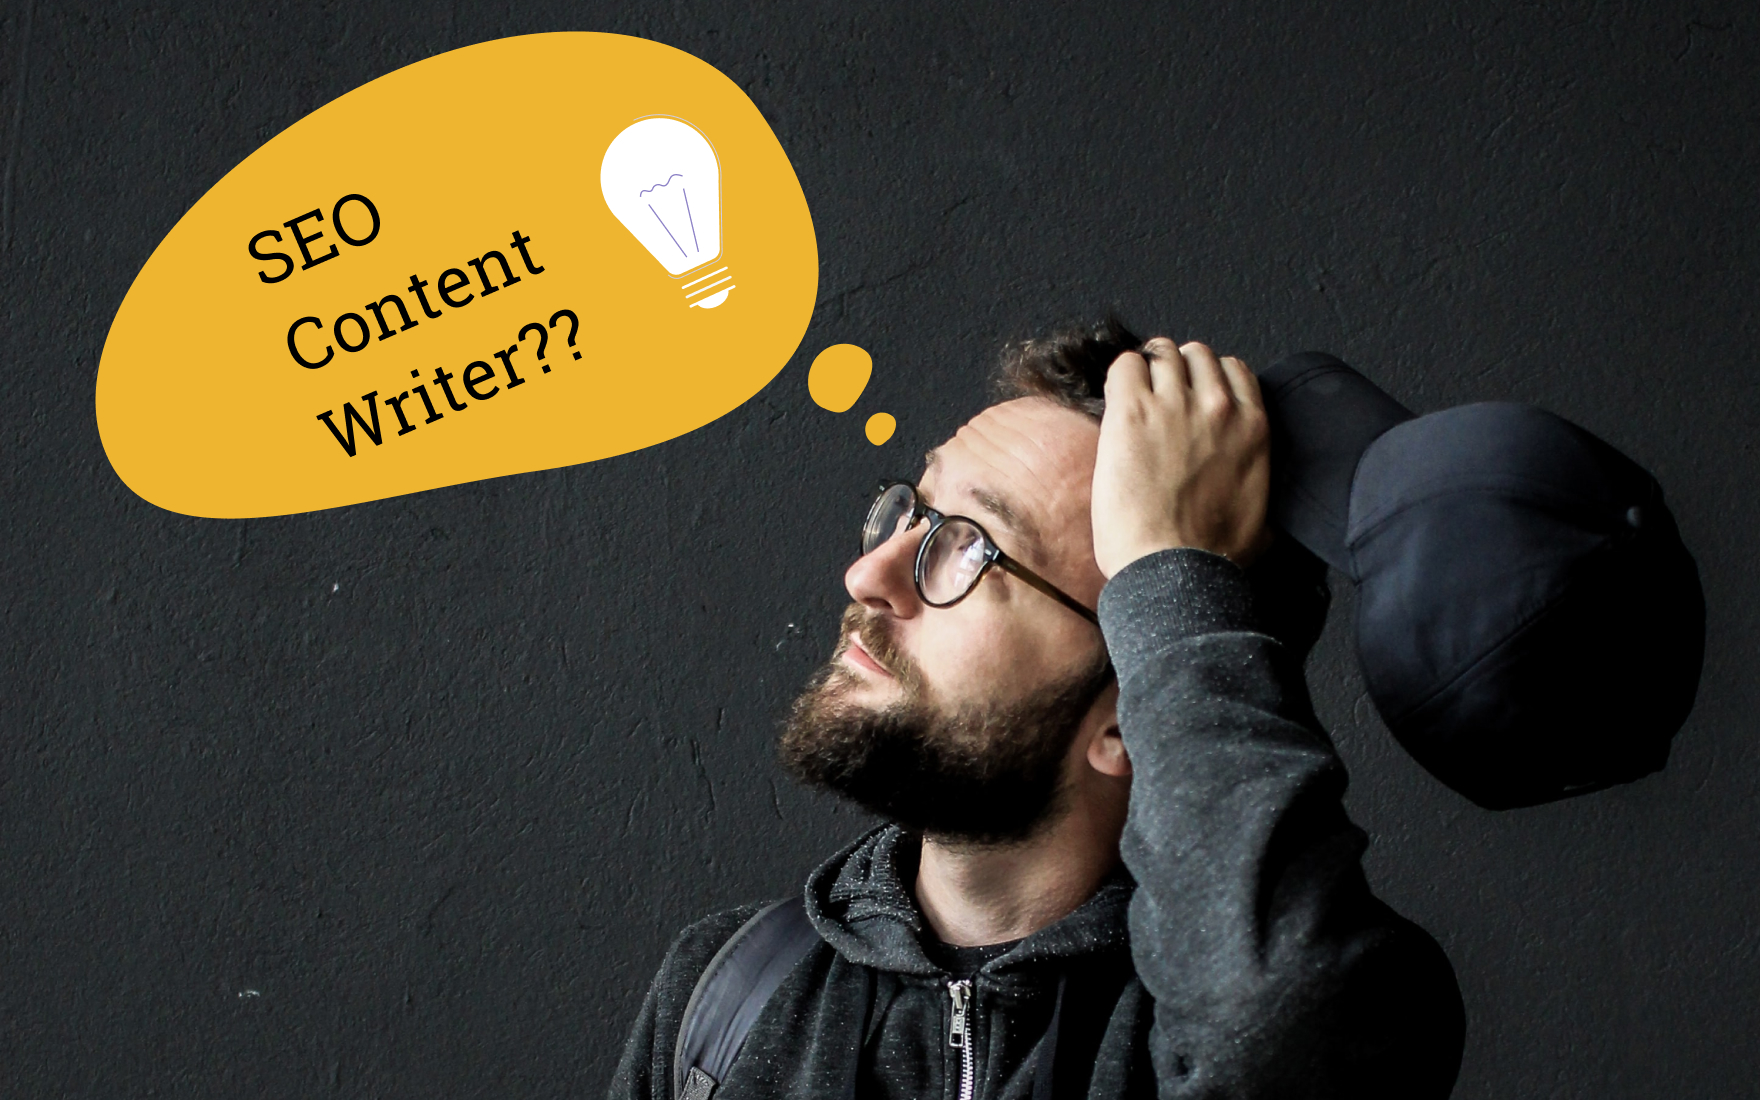 How to be an SEO Content Writer?